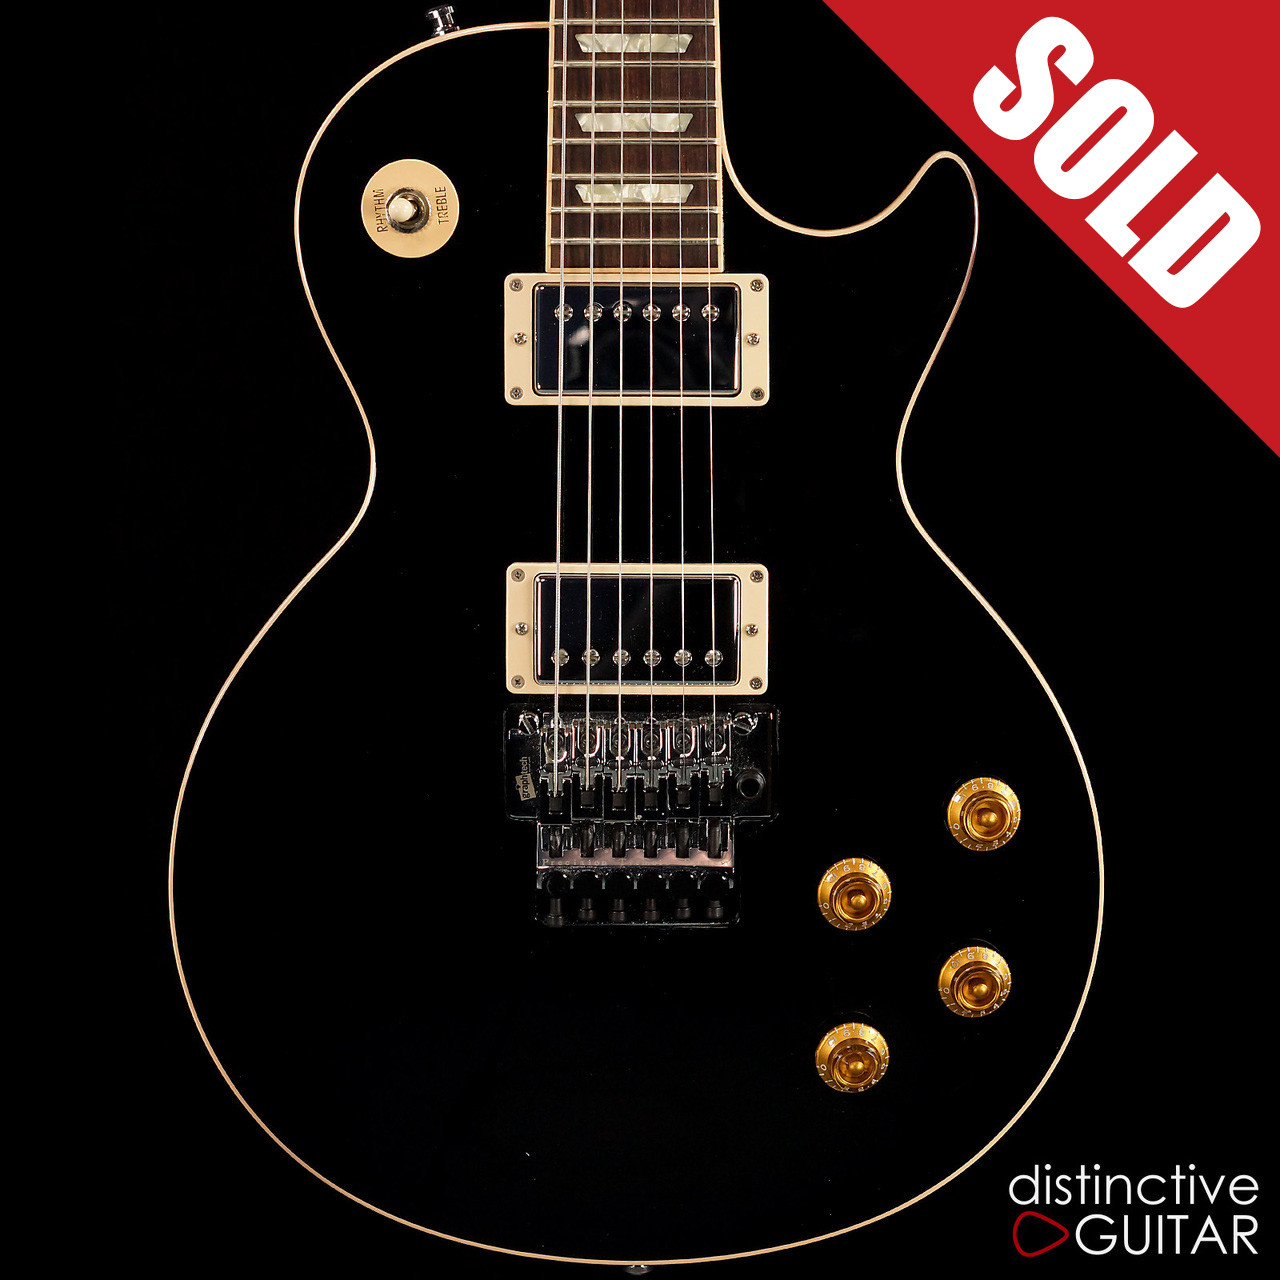 Les Paul Axcess Wiring Diagram Data Schema Gibson On Guitar Schematics Alex Lifeson Trusted Diagrams Epiphone